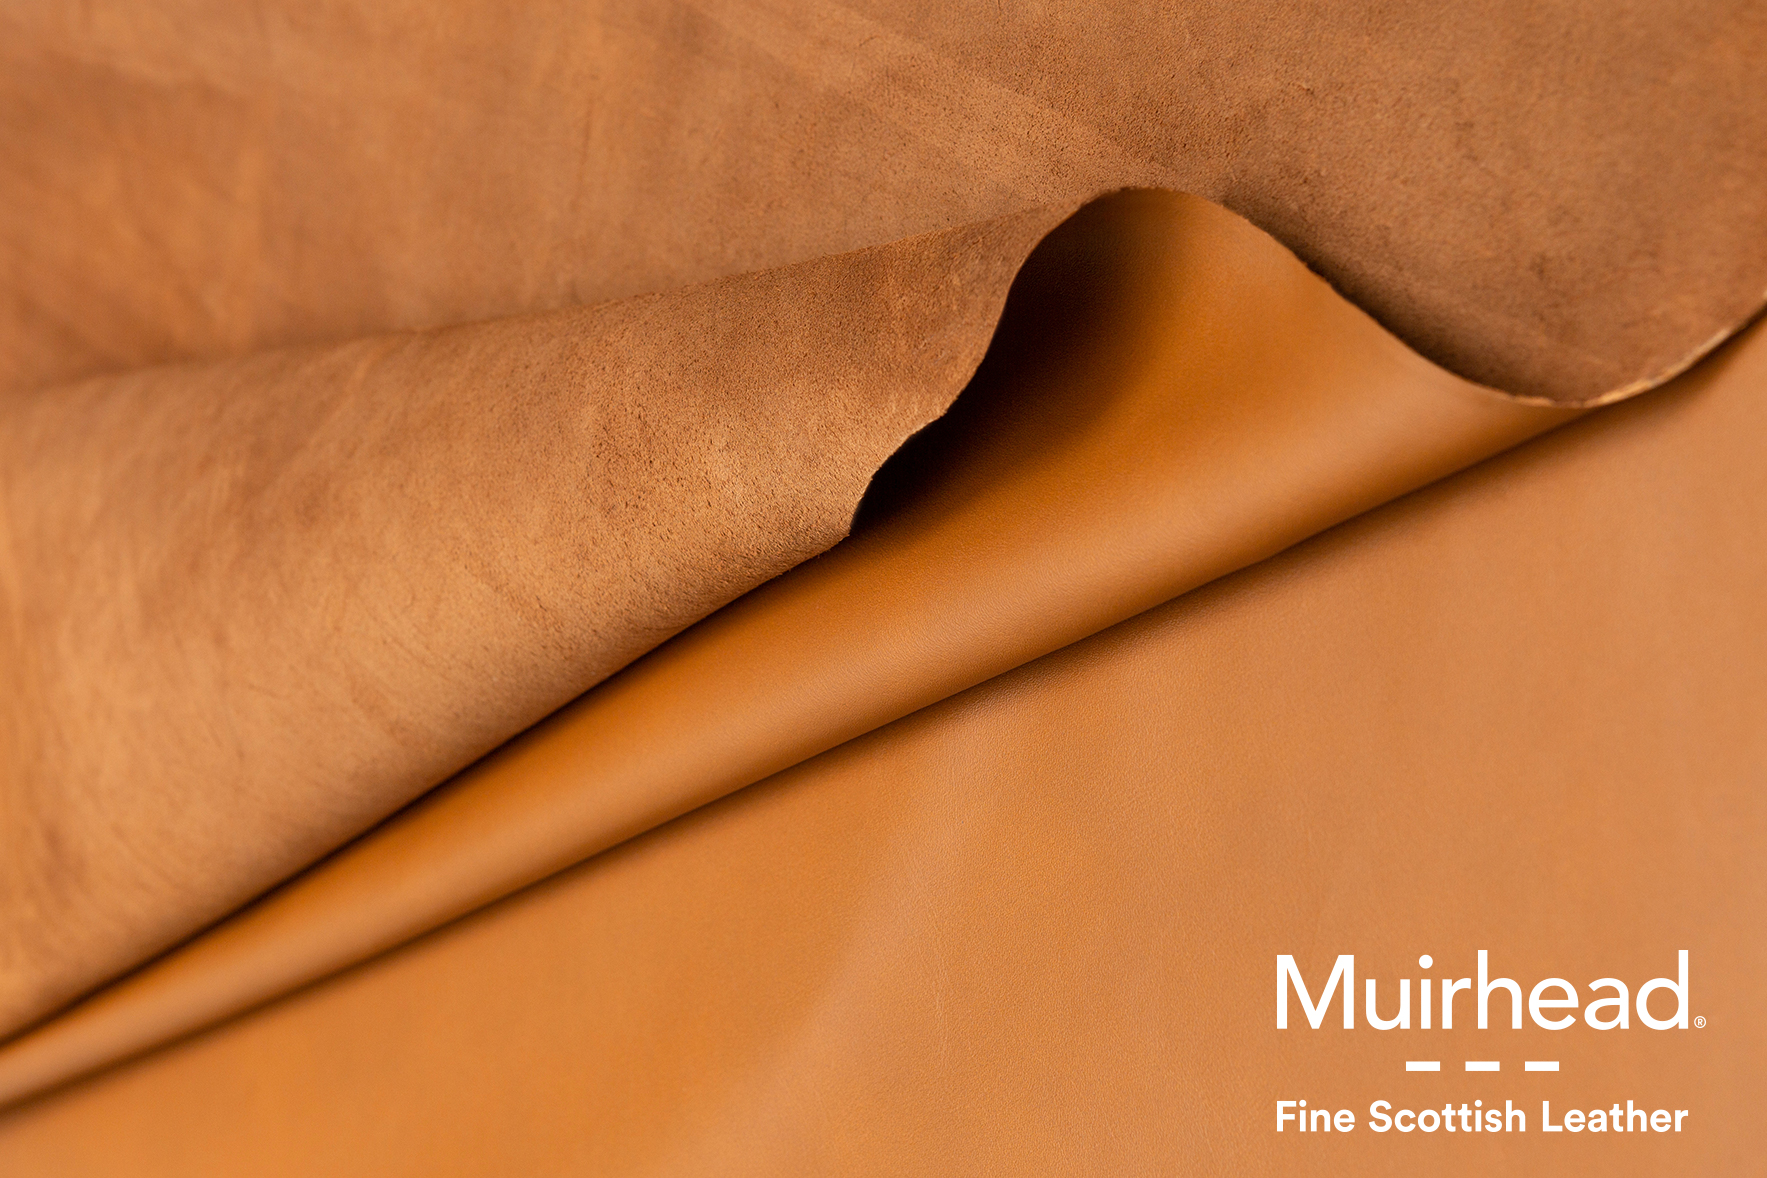 Muirhead leather with logo